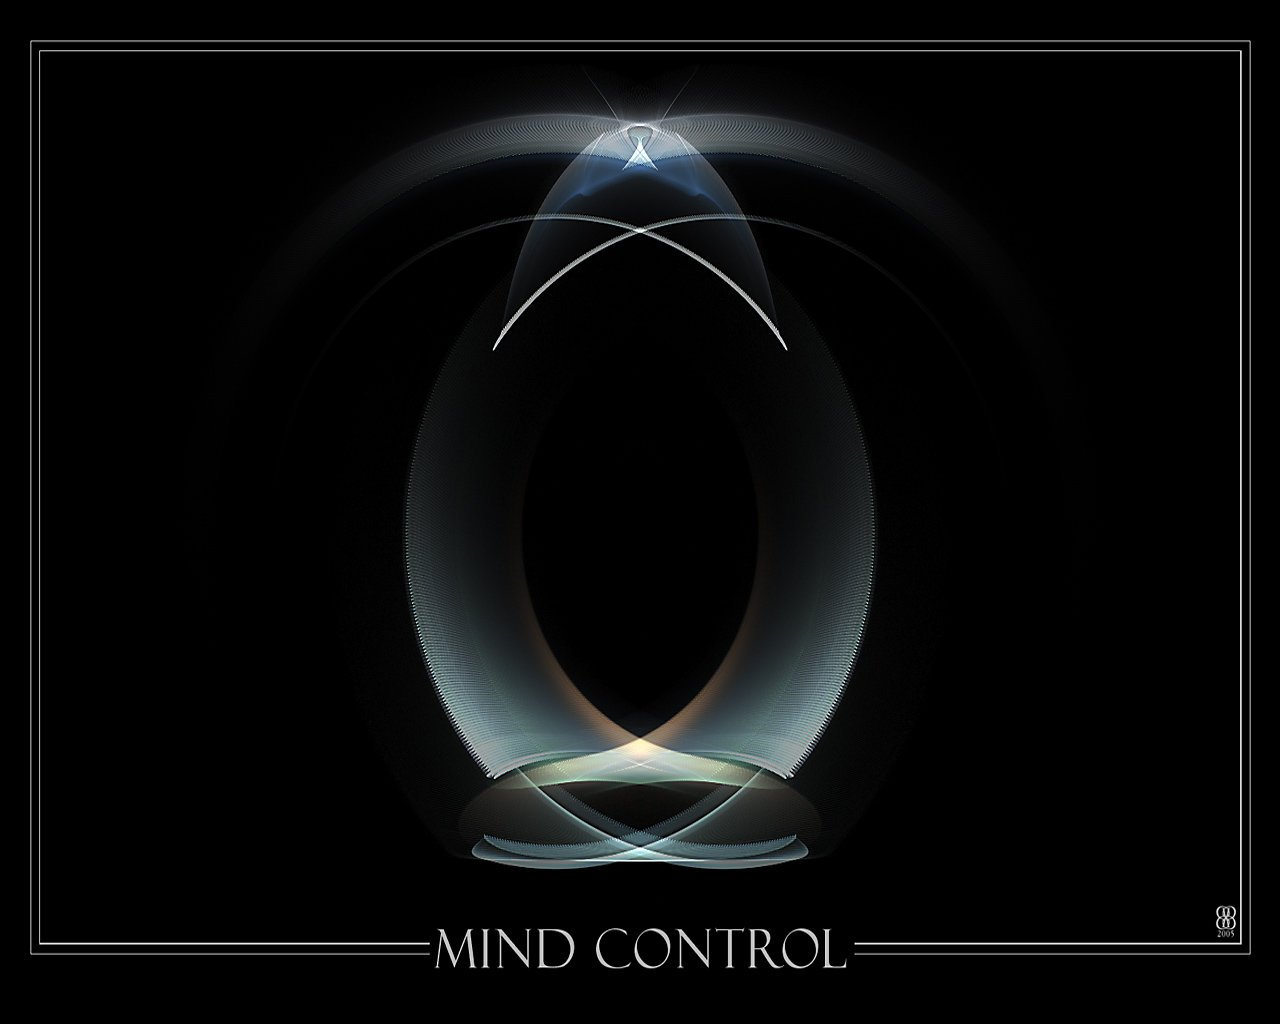 Free Download Mind Control Wallpaper By Littledeviltoo On